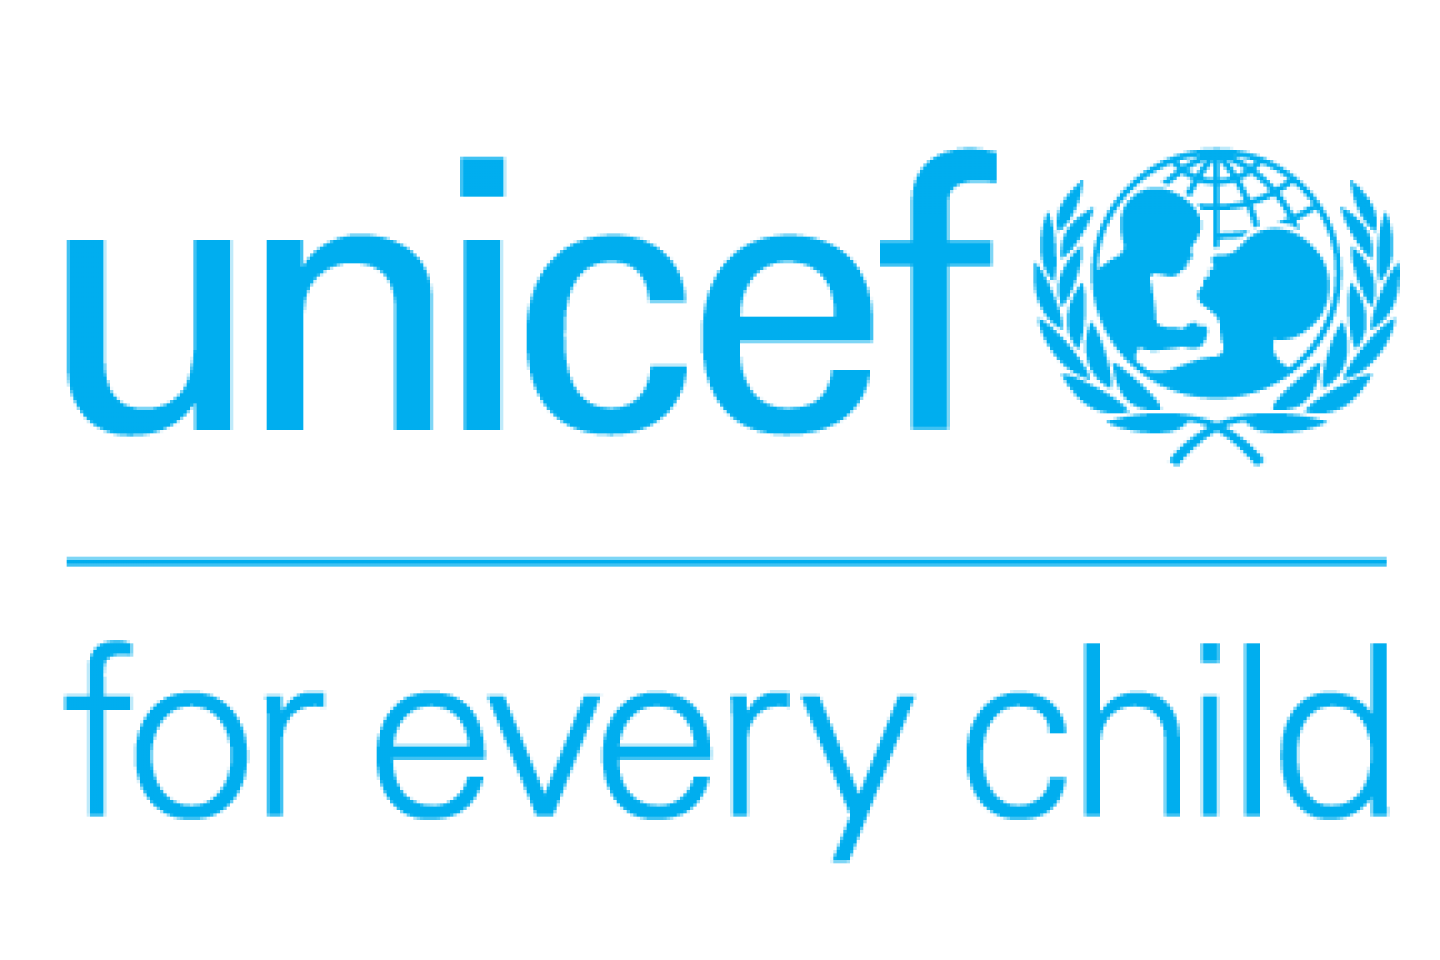 Unicef charity for every child